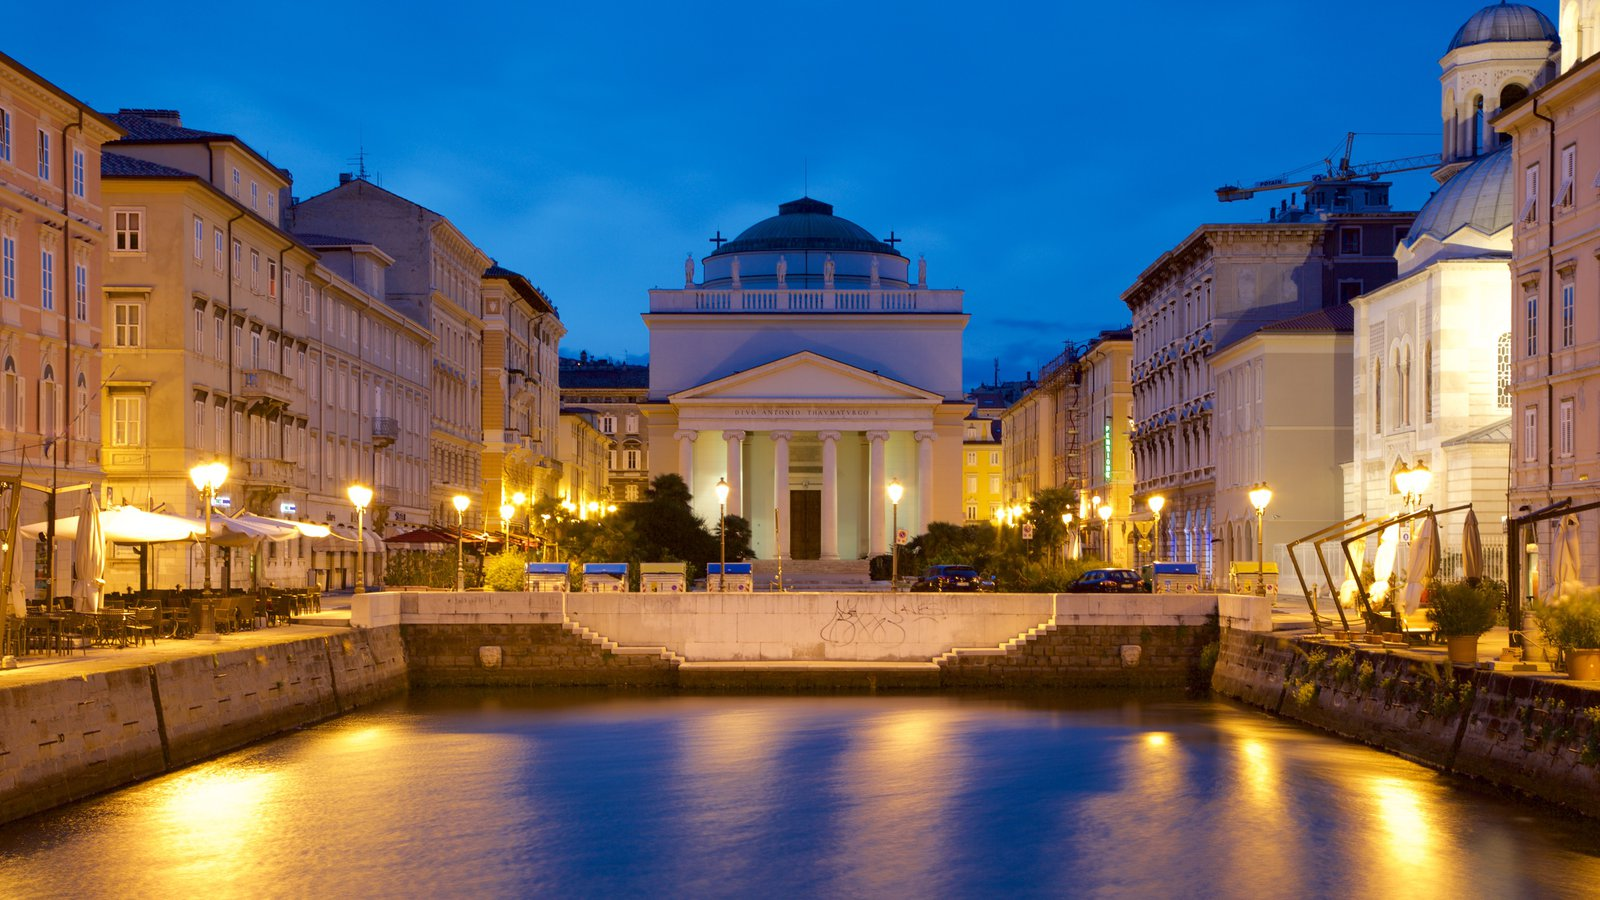 Trieste showing a pond, night scenes and heritage architecture